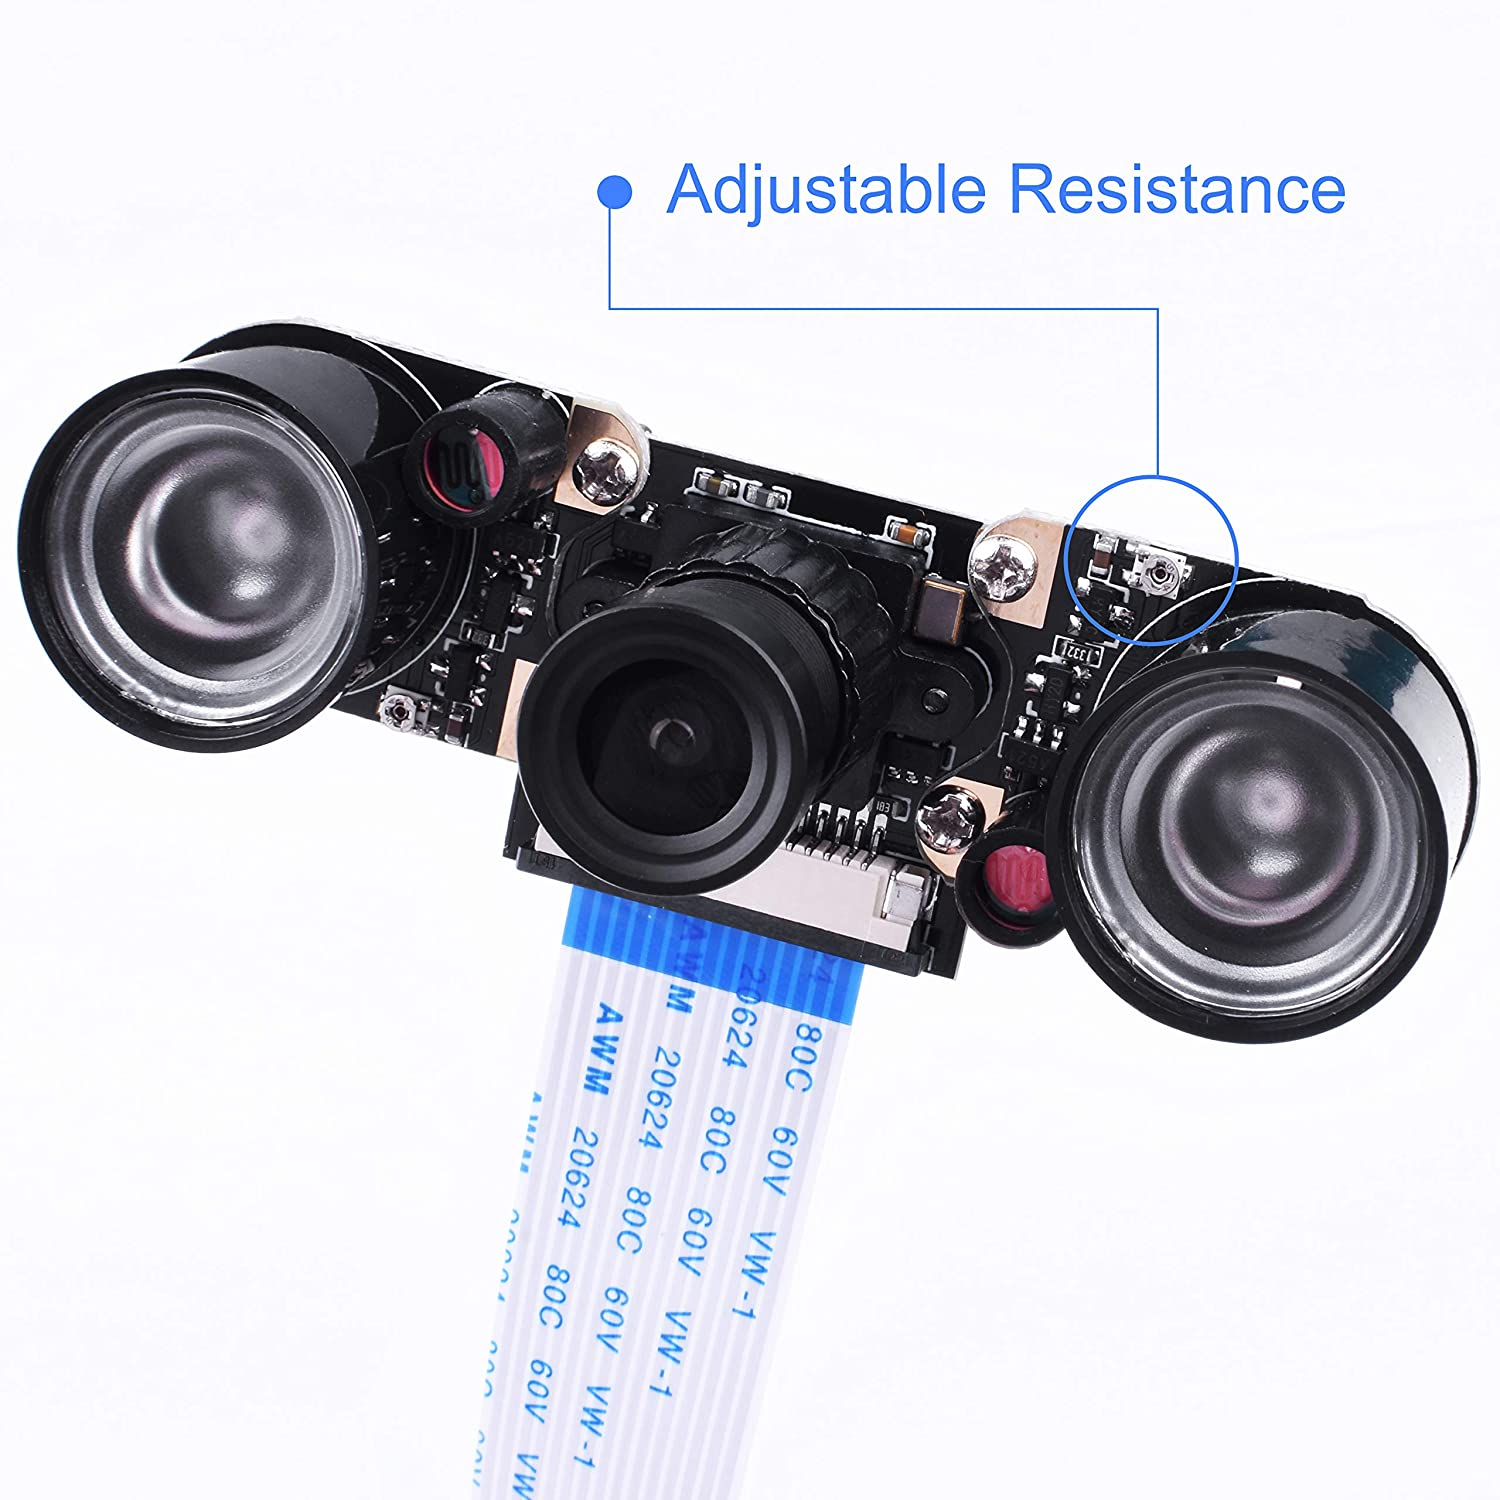 Kuman for Raspberry PI Camera Module 5MP 1080p OV5647 Sensor HD Video Webcam Supports Night Vision for All Vision Raspberry Pi model B/B+ A+ RPi 3/ 2 /1 /zero/ zero W with FFC/ FPC Cable SC15-1 SC15-1-US